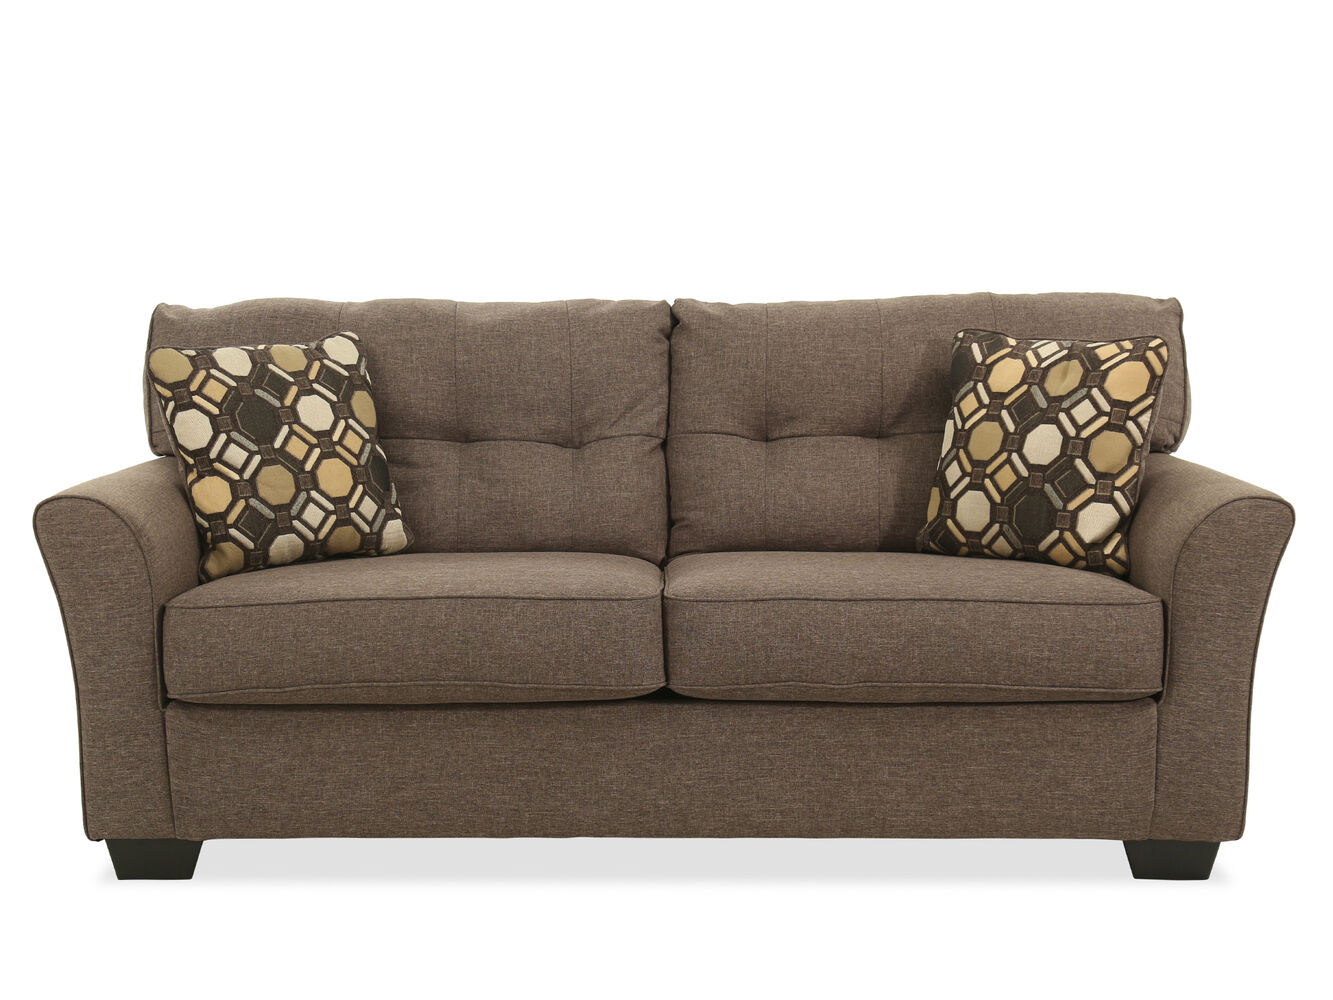 Ashley Tibbee Slate Sofa | Mathis Brothers Furniture